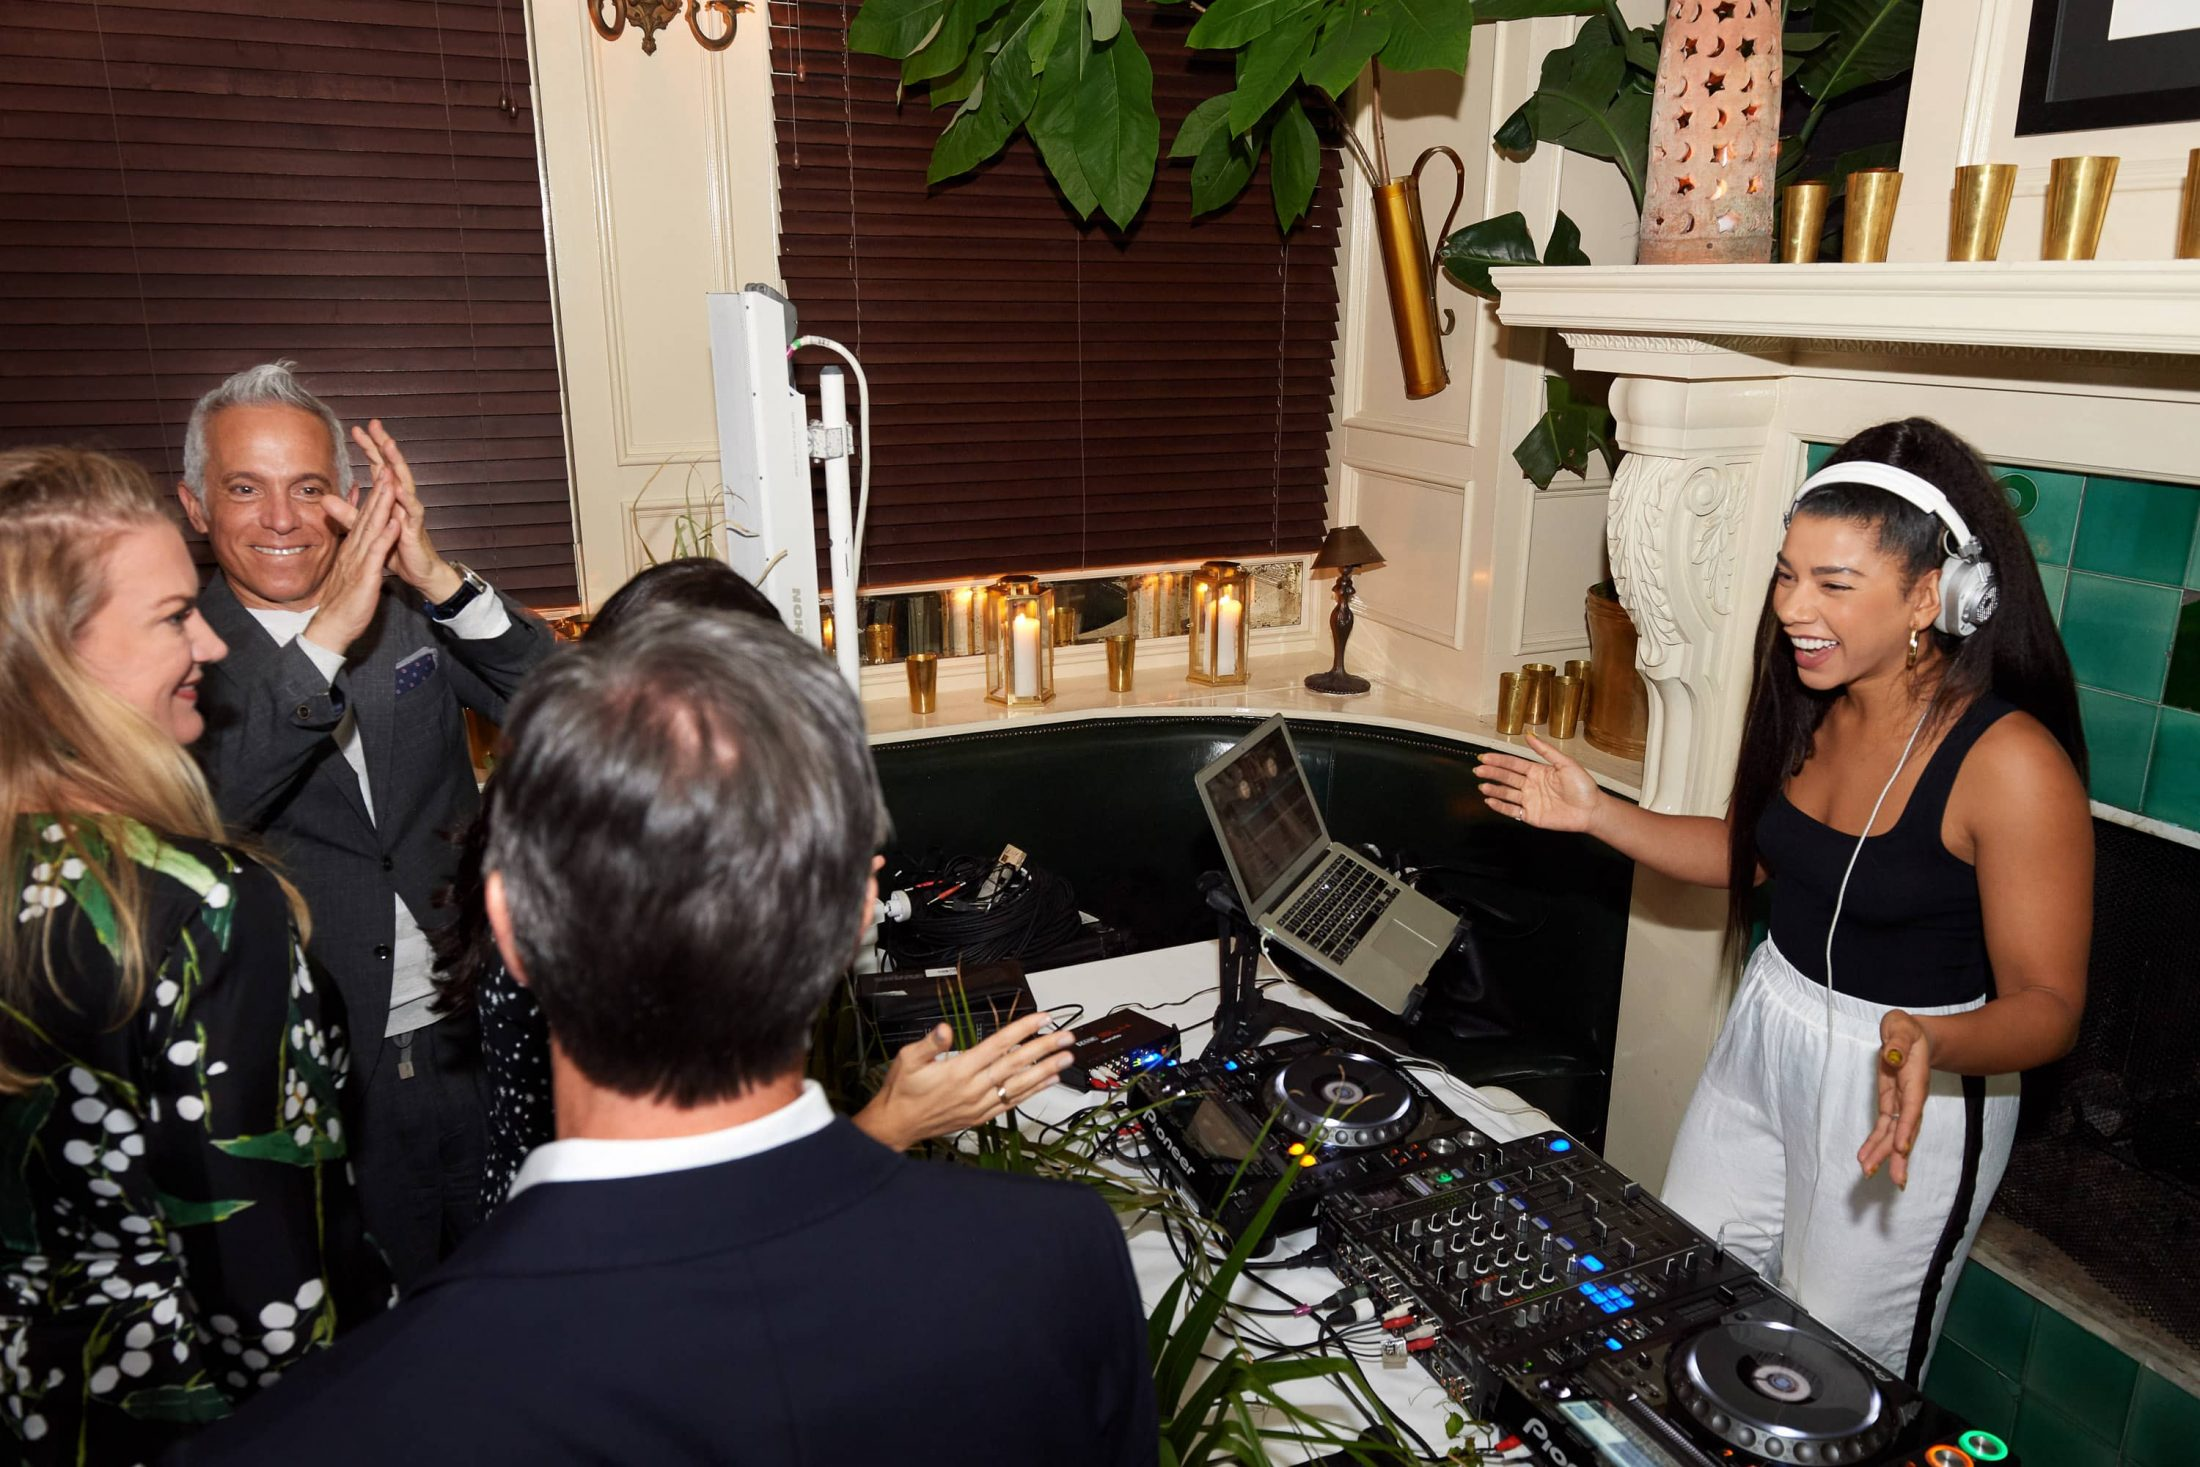 DJ Hannah Bronfman at this 40th surprise birthday party at Beatrice Inn in West Village | Photo by Darren Ornitz